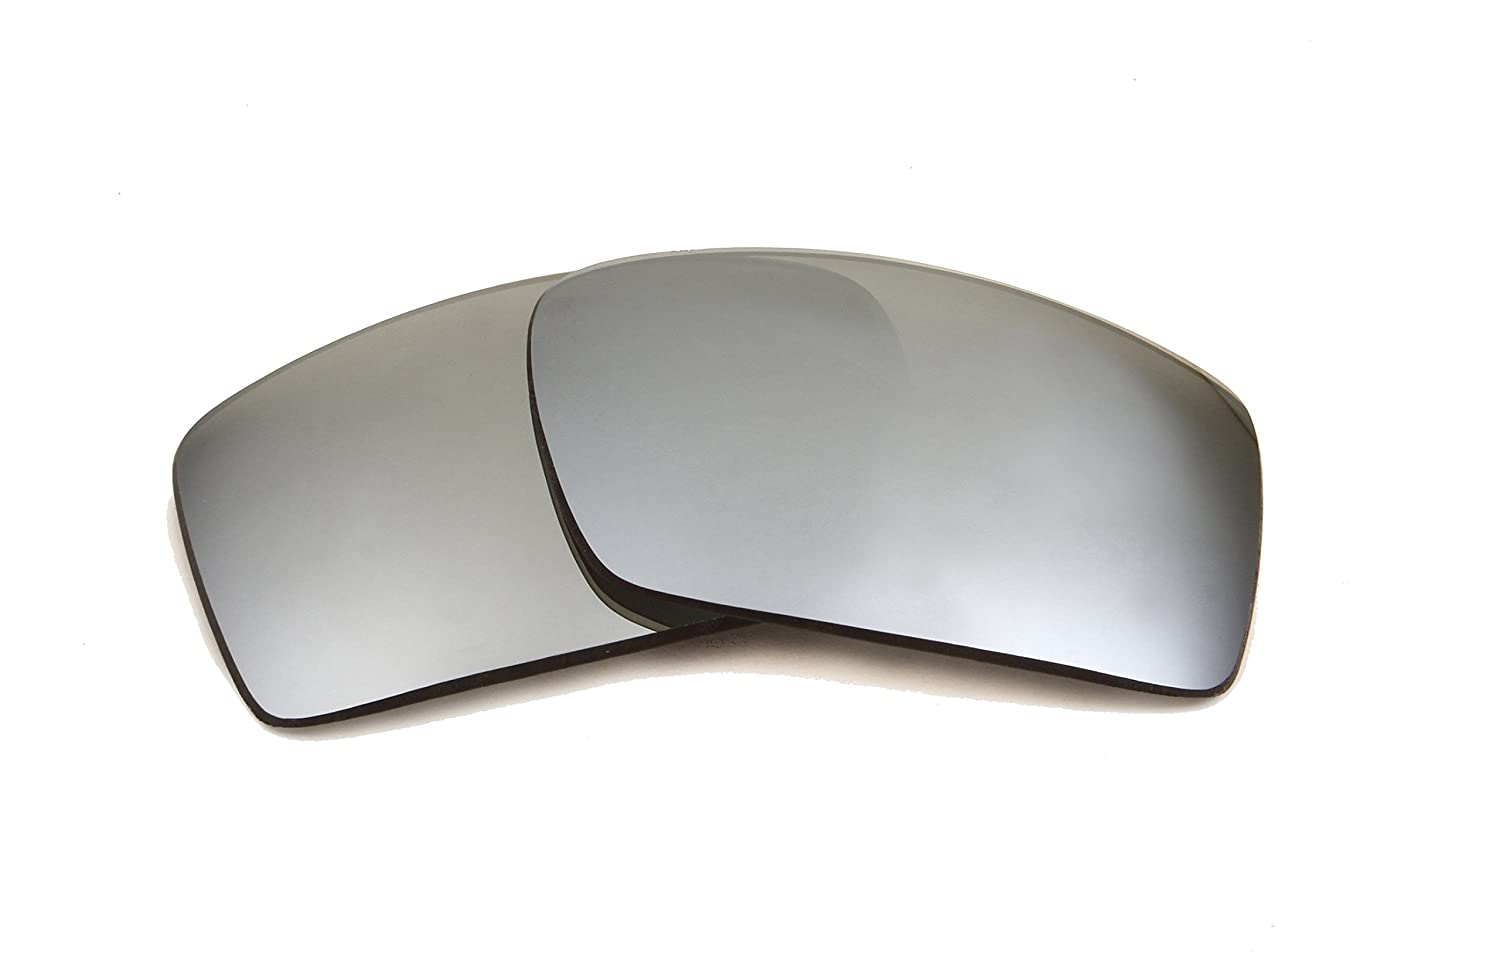 Best SEEK Replacement Lenses Von Zipper SNARK - Polarized Silver Mirror Seek Optics -206-03-01-copy